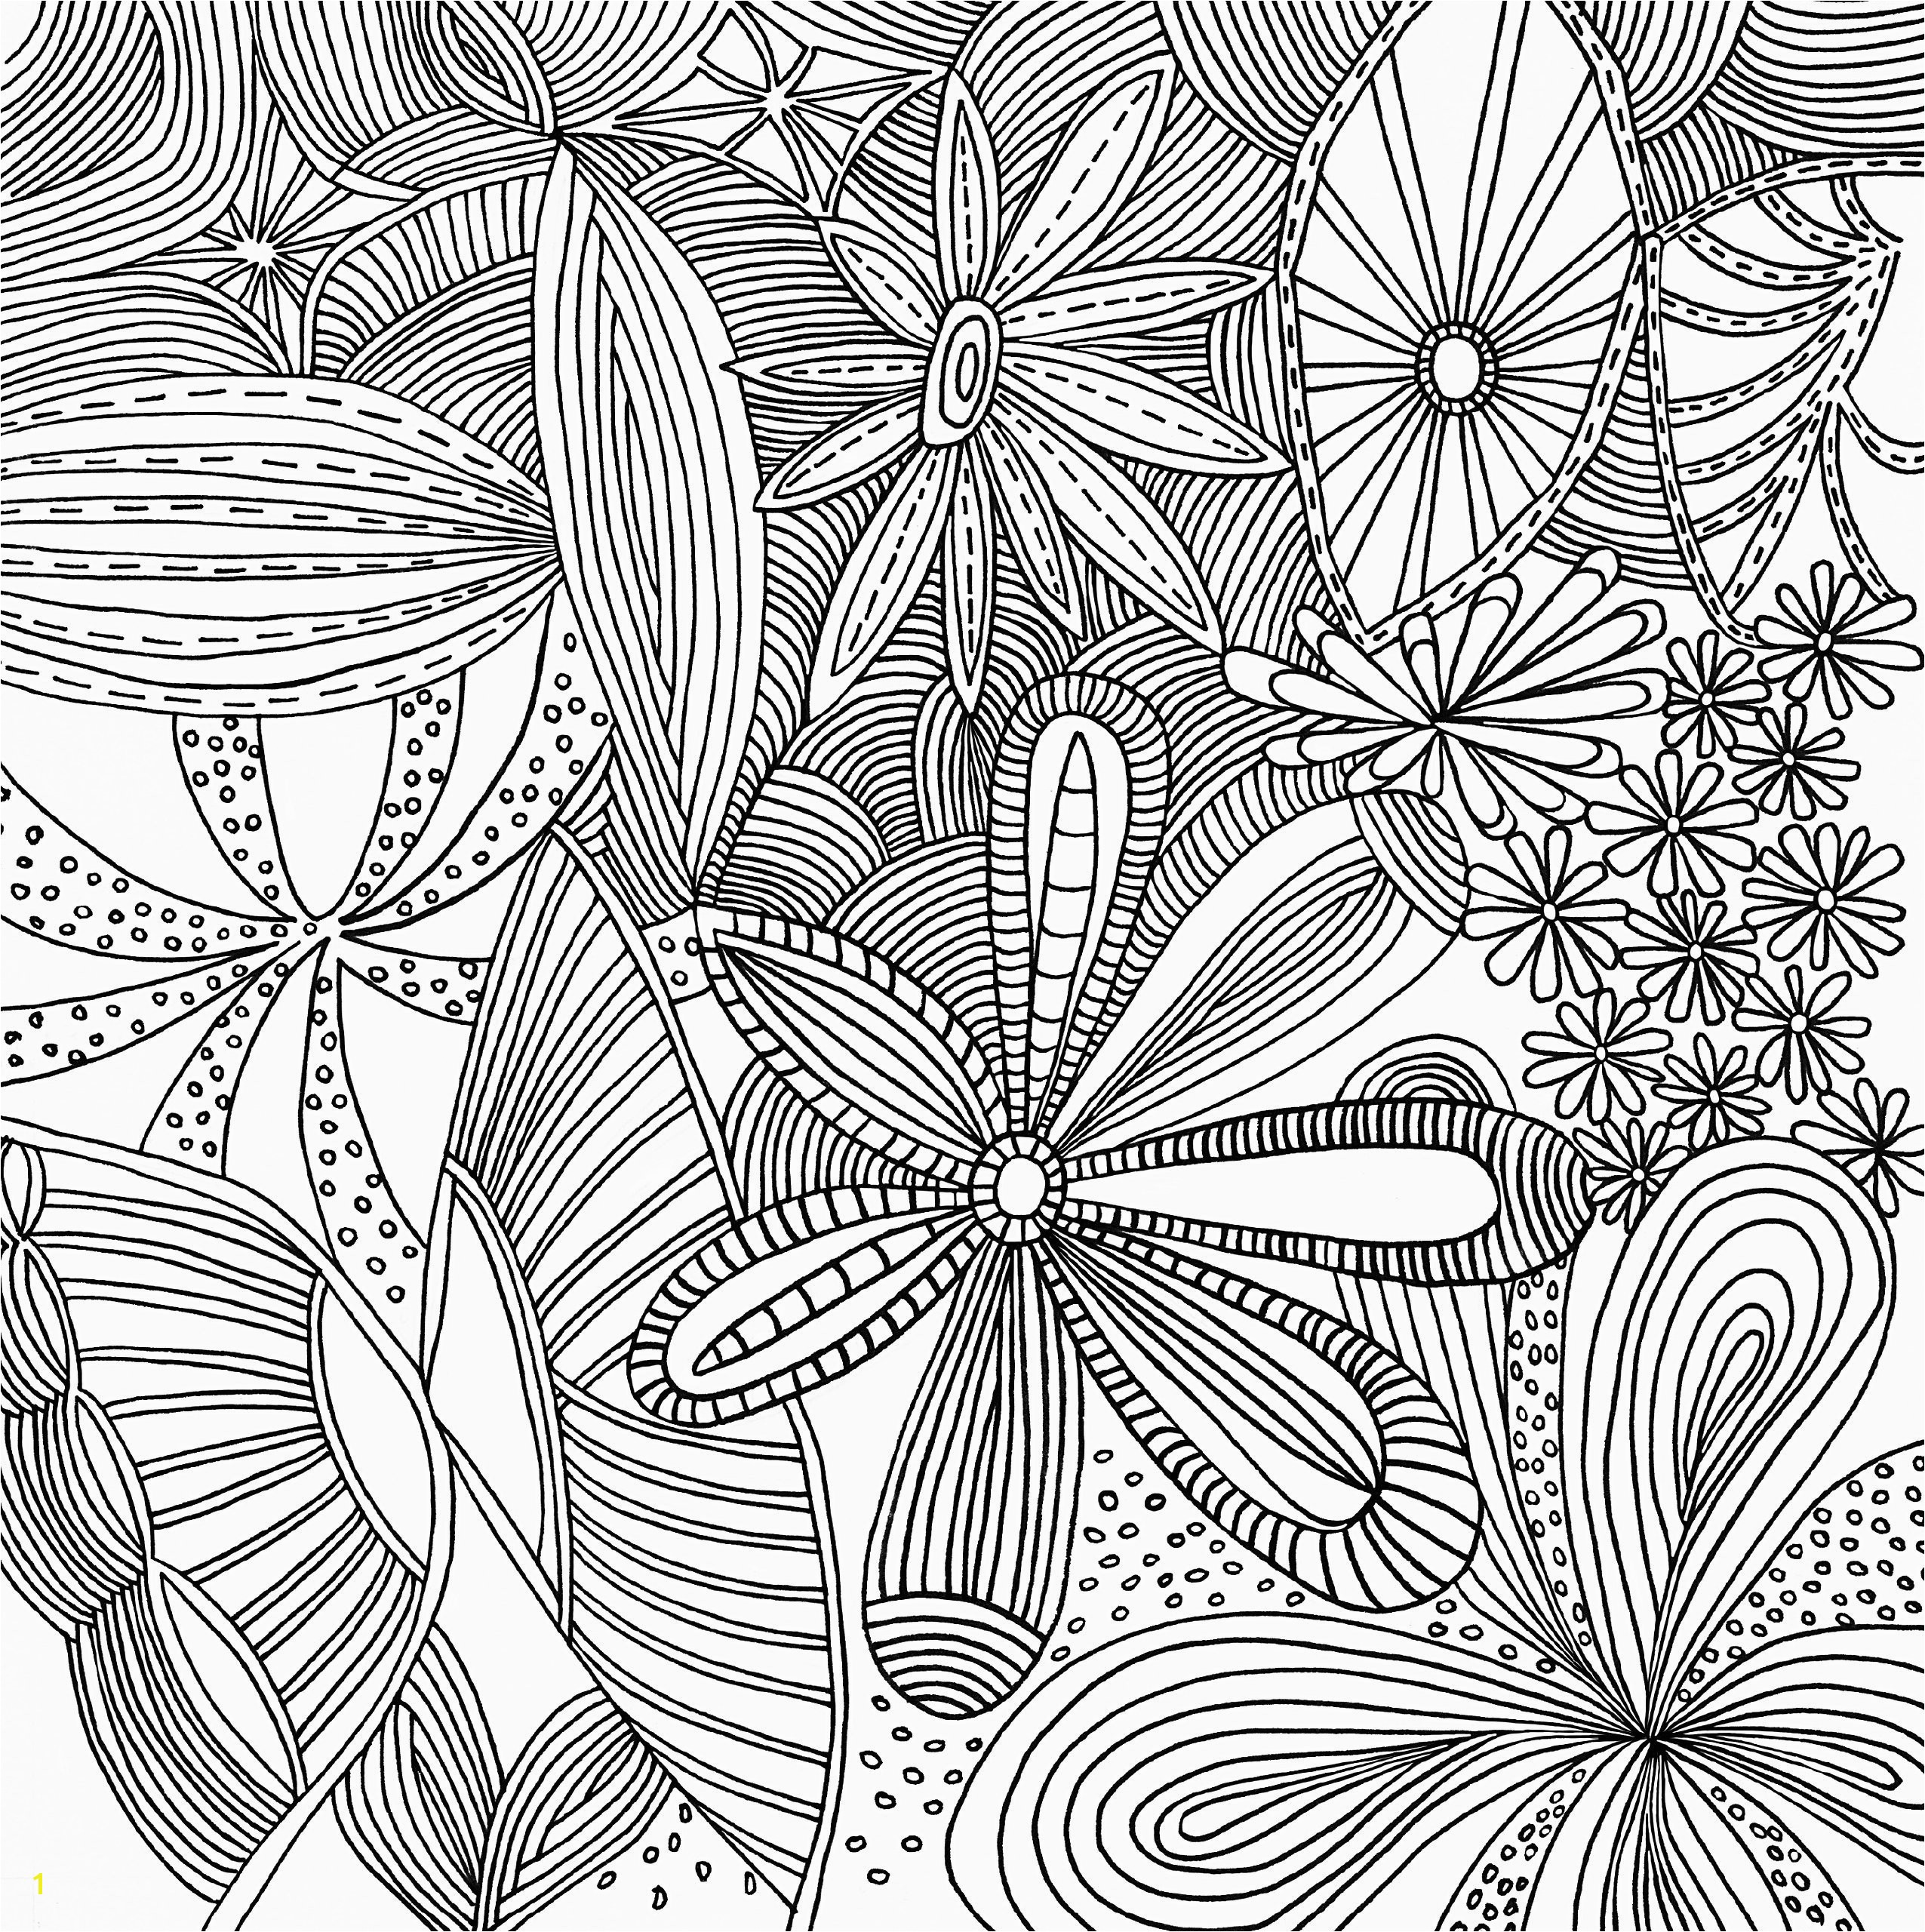 Food Coloring Pages Beautiful Fresh S S Media Cache Ak0 Pinimg originals 0d B4 2c Free Gallery